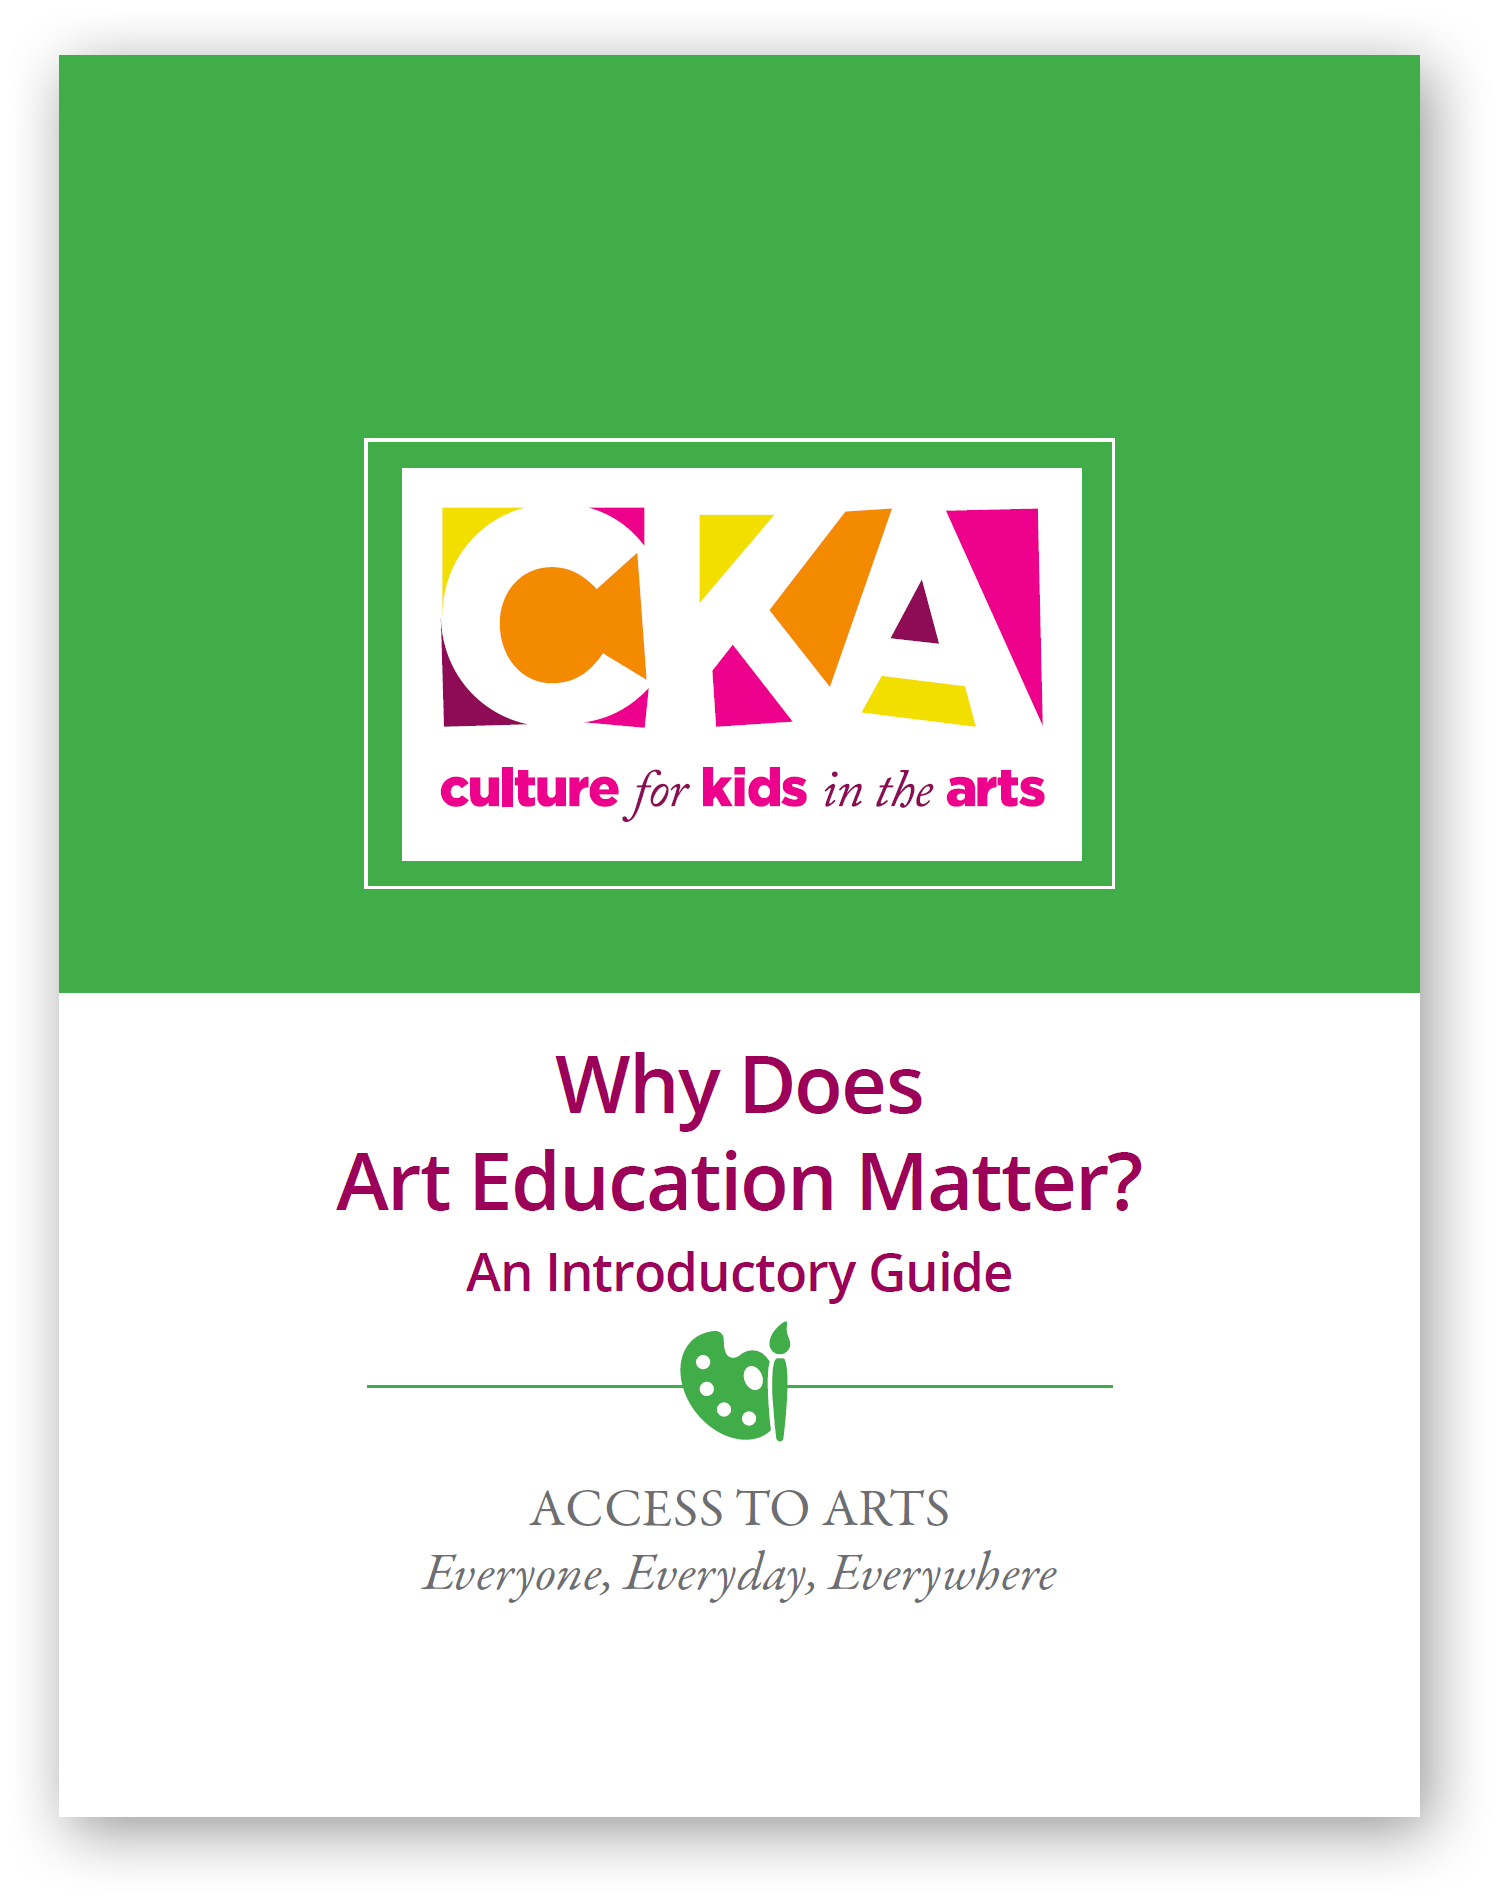 Why Does Art Education Matter?